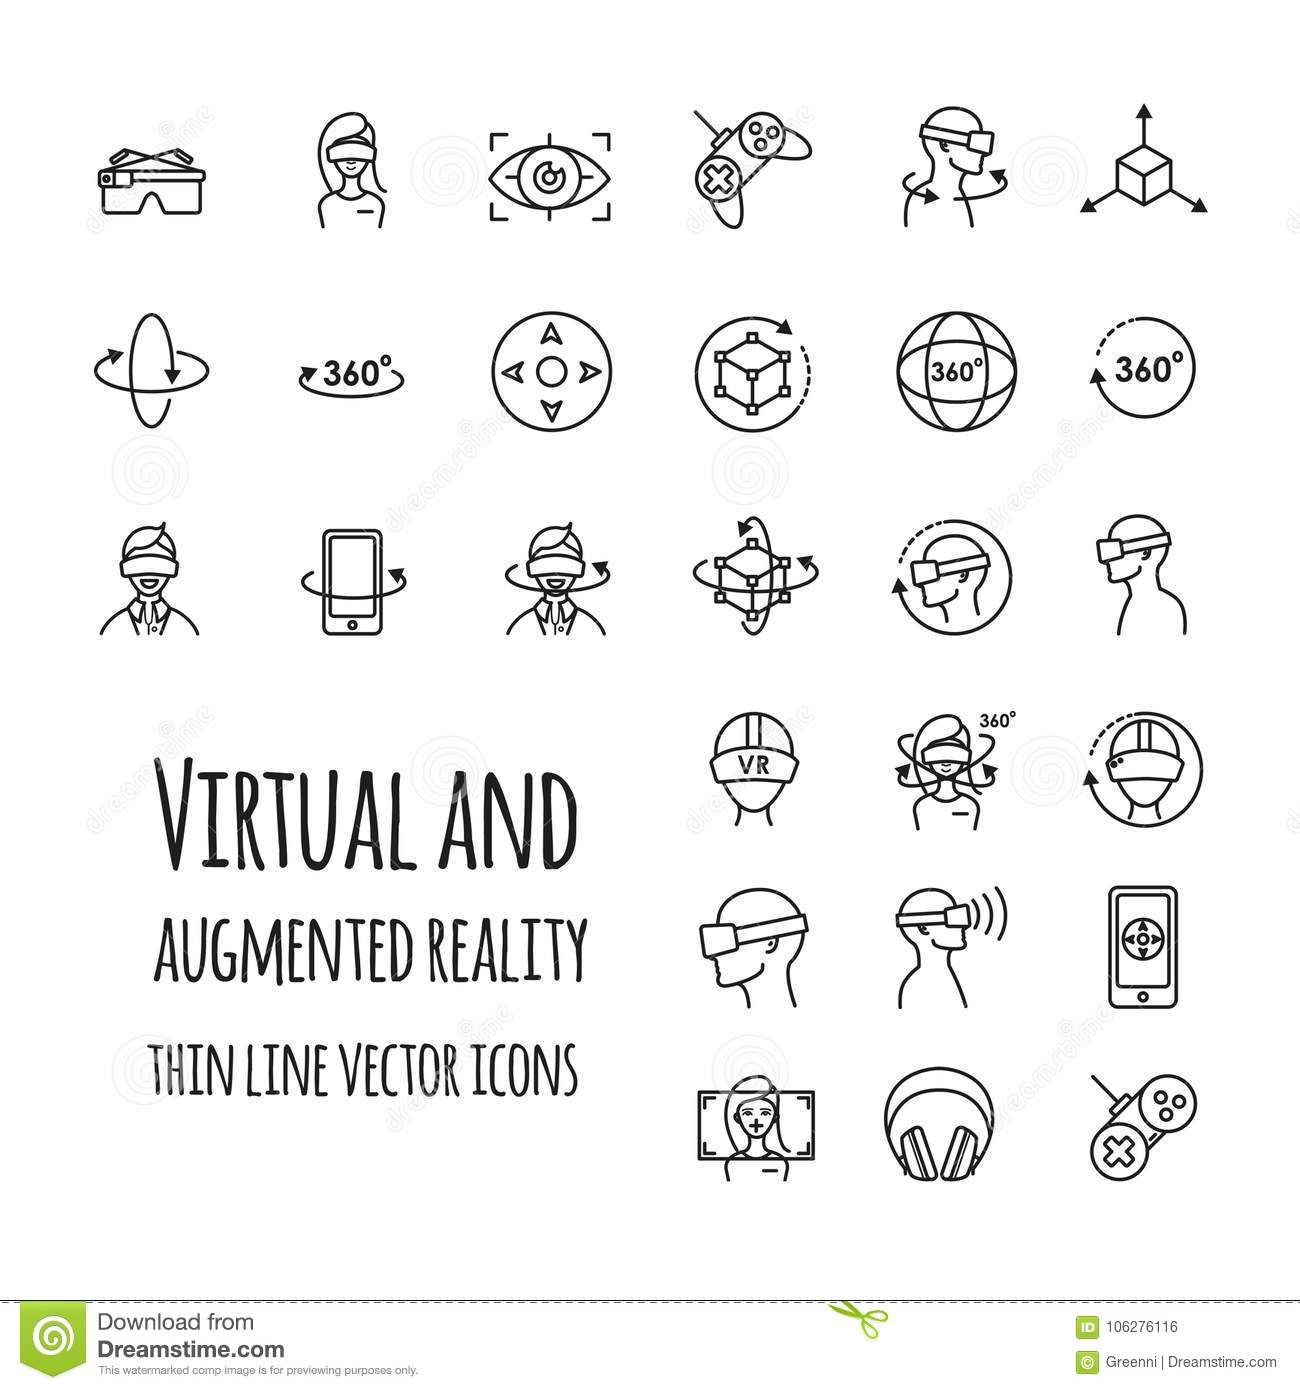 Virtual And Augmented Reality Vector Icons Set Stock Vector